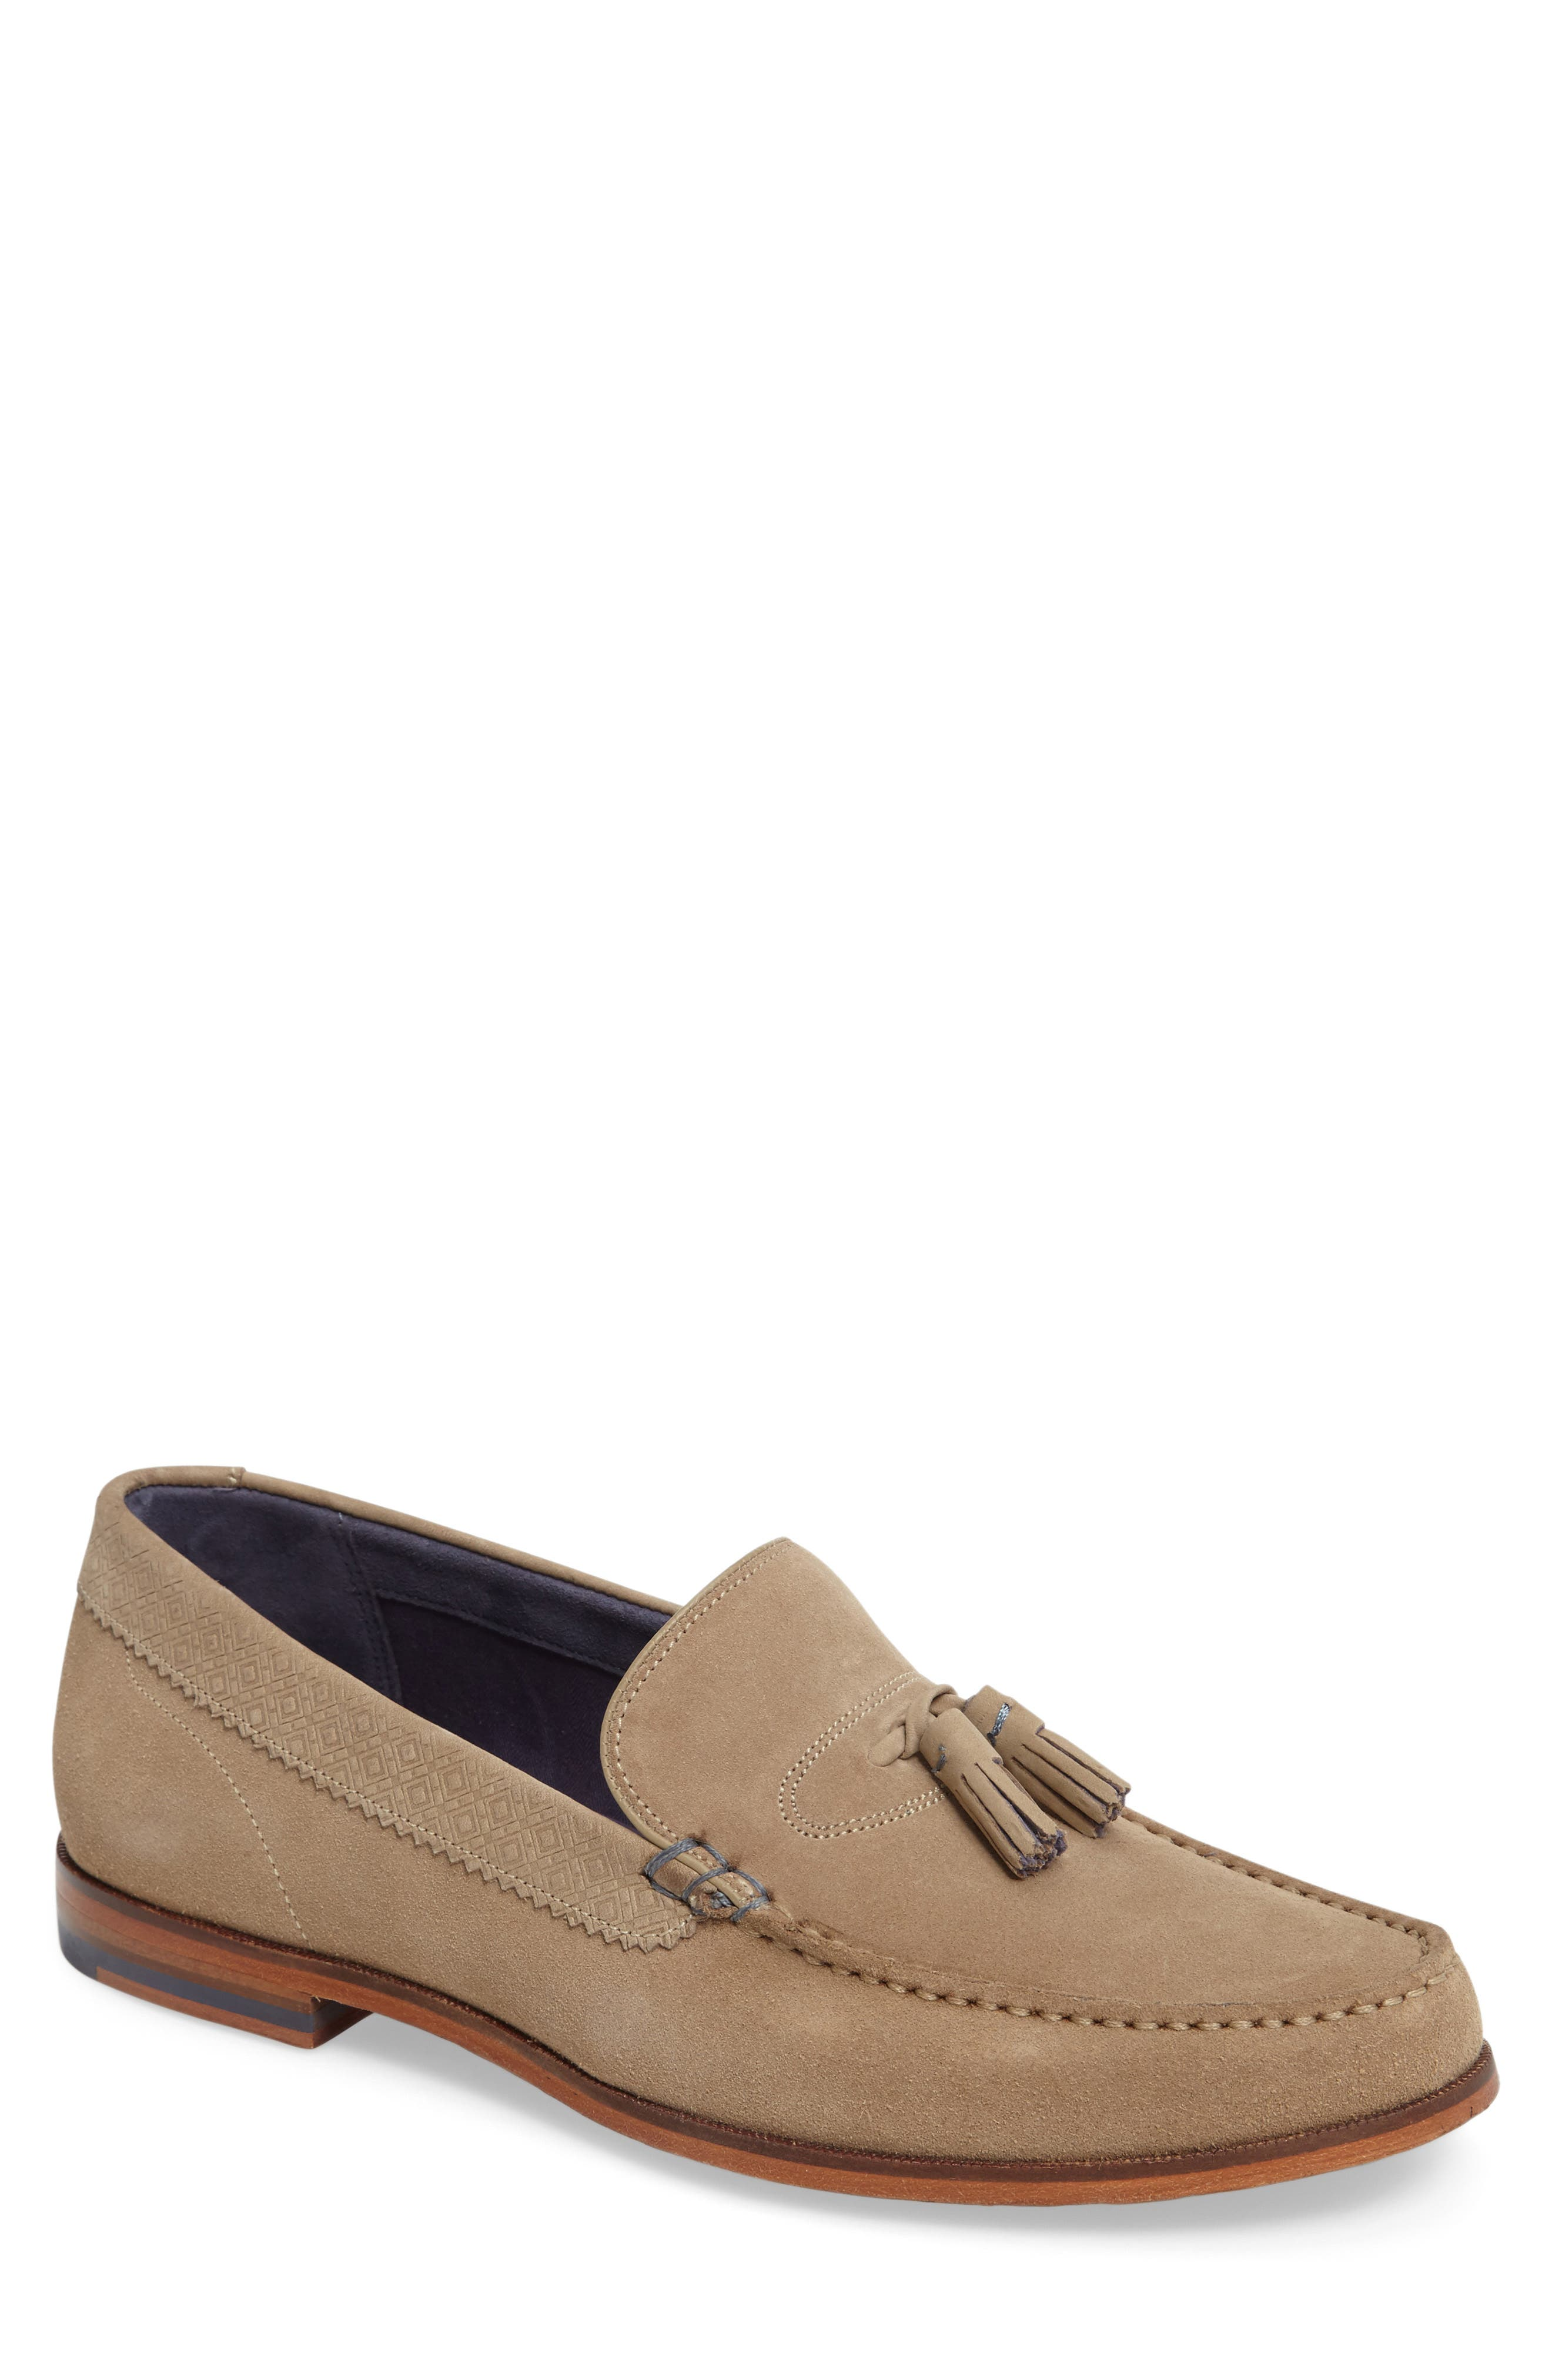 Dougge Tassel Loafer,                             Main thumbnail 1, color,